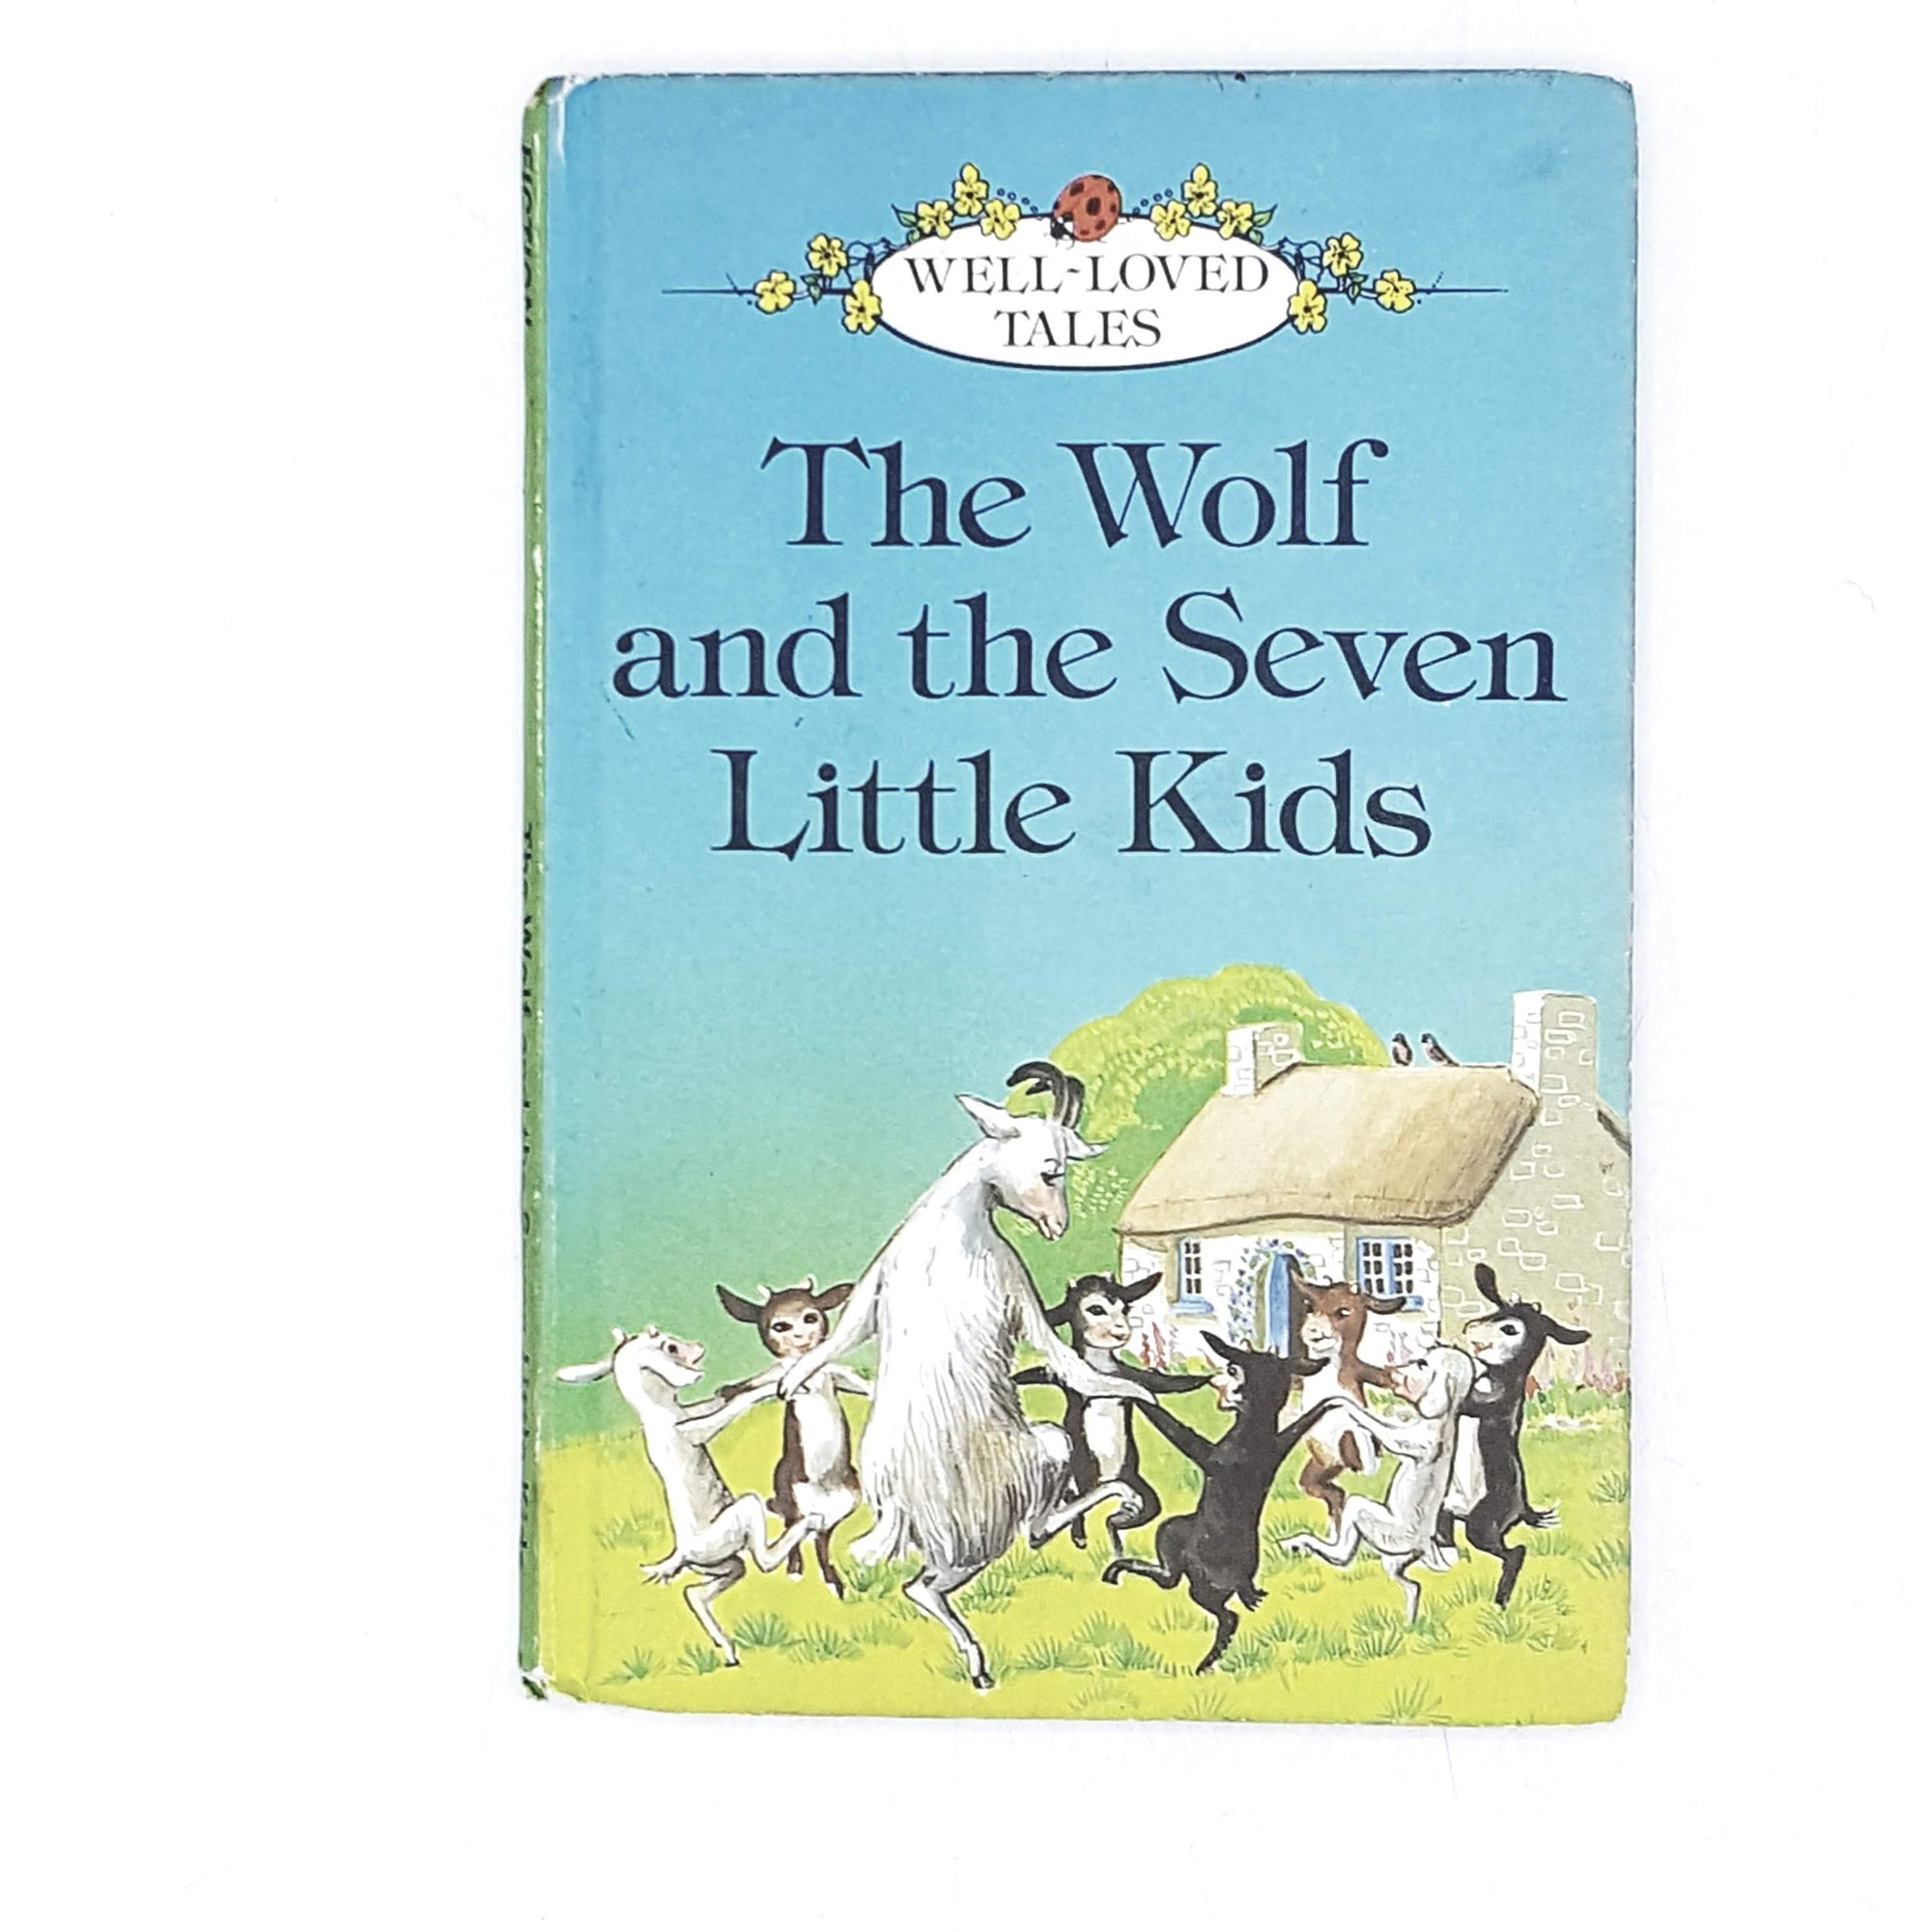 vintage-ladybird-the-wolf-and-the-seven-little-kids-1979-kindergarten-books-country-house-library